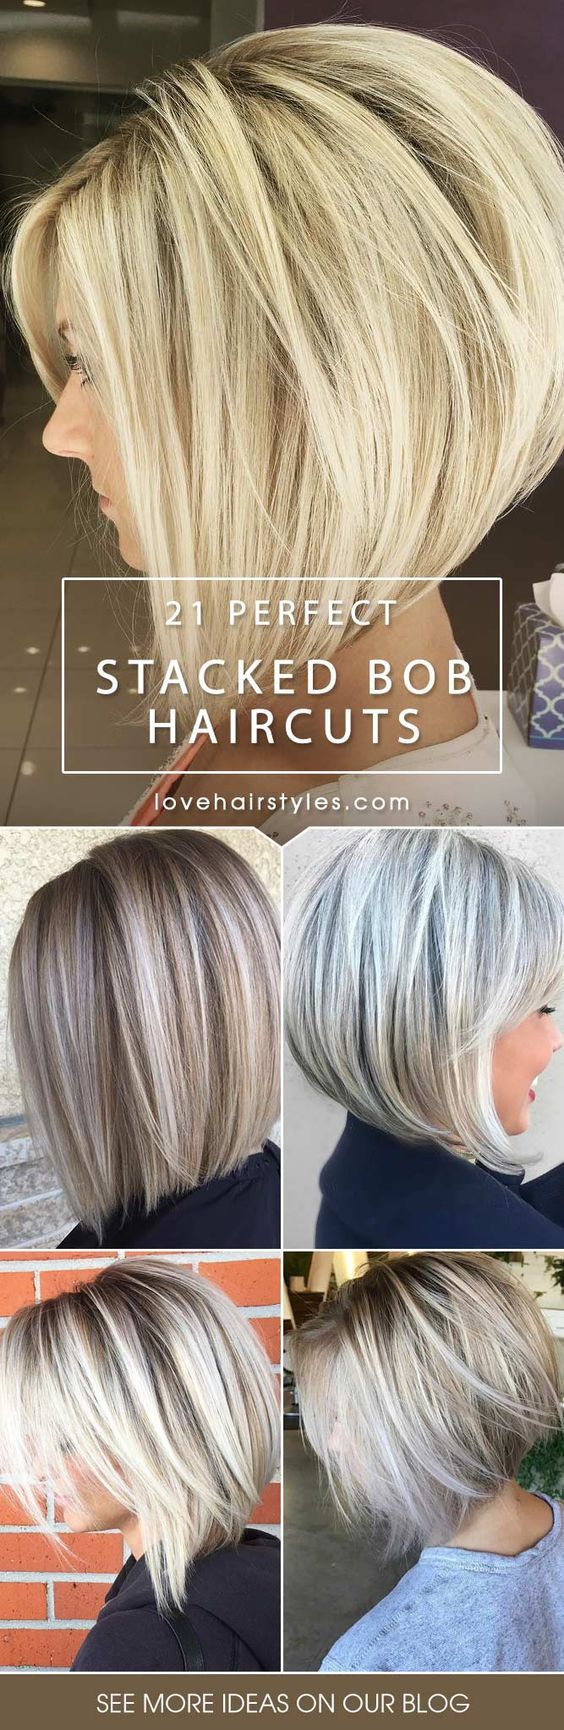 Find out fantastic stacked bob haircut ideas https://www.facebook.com/shorthaircutstyles/posts/1720573084899798